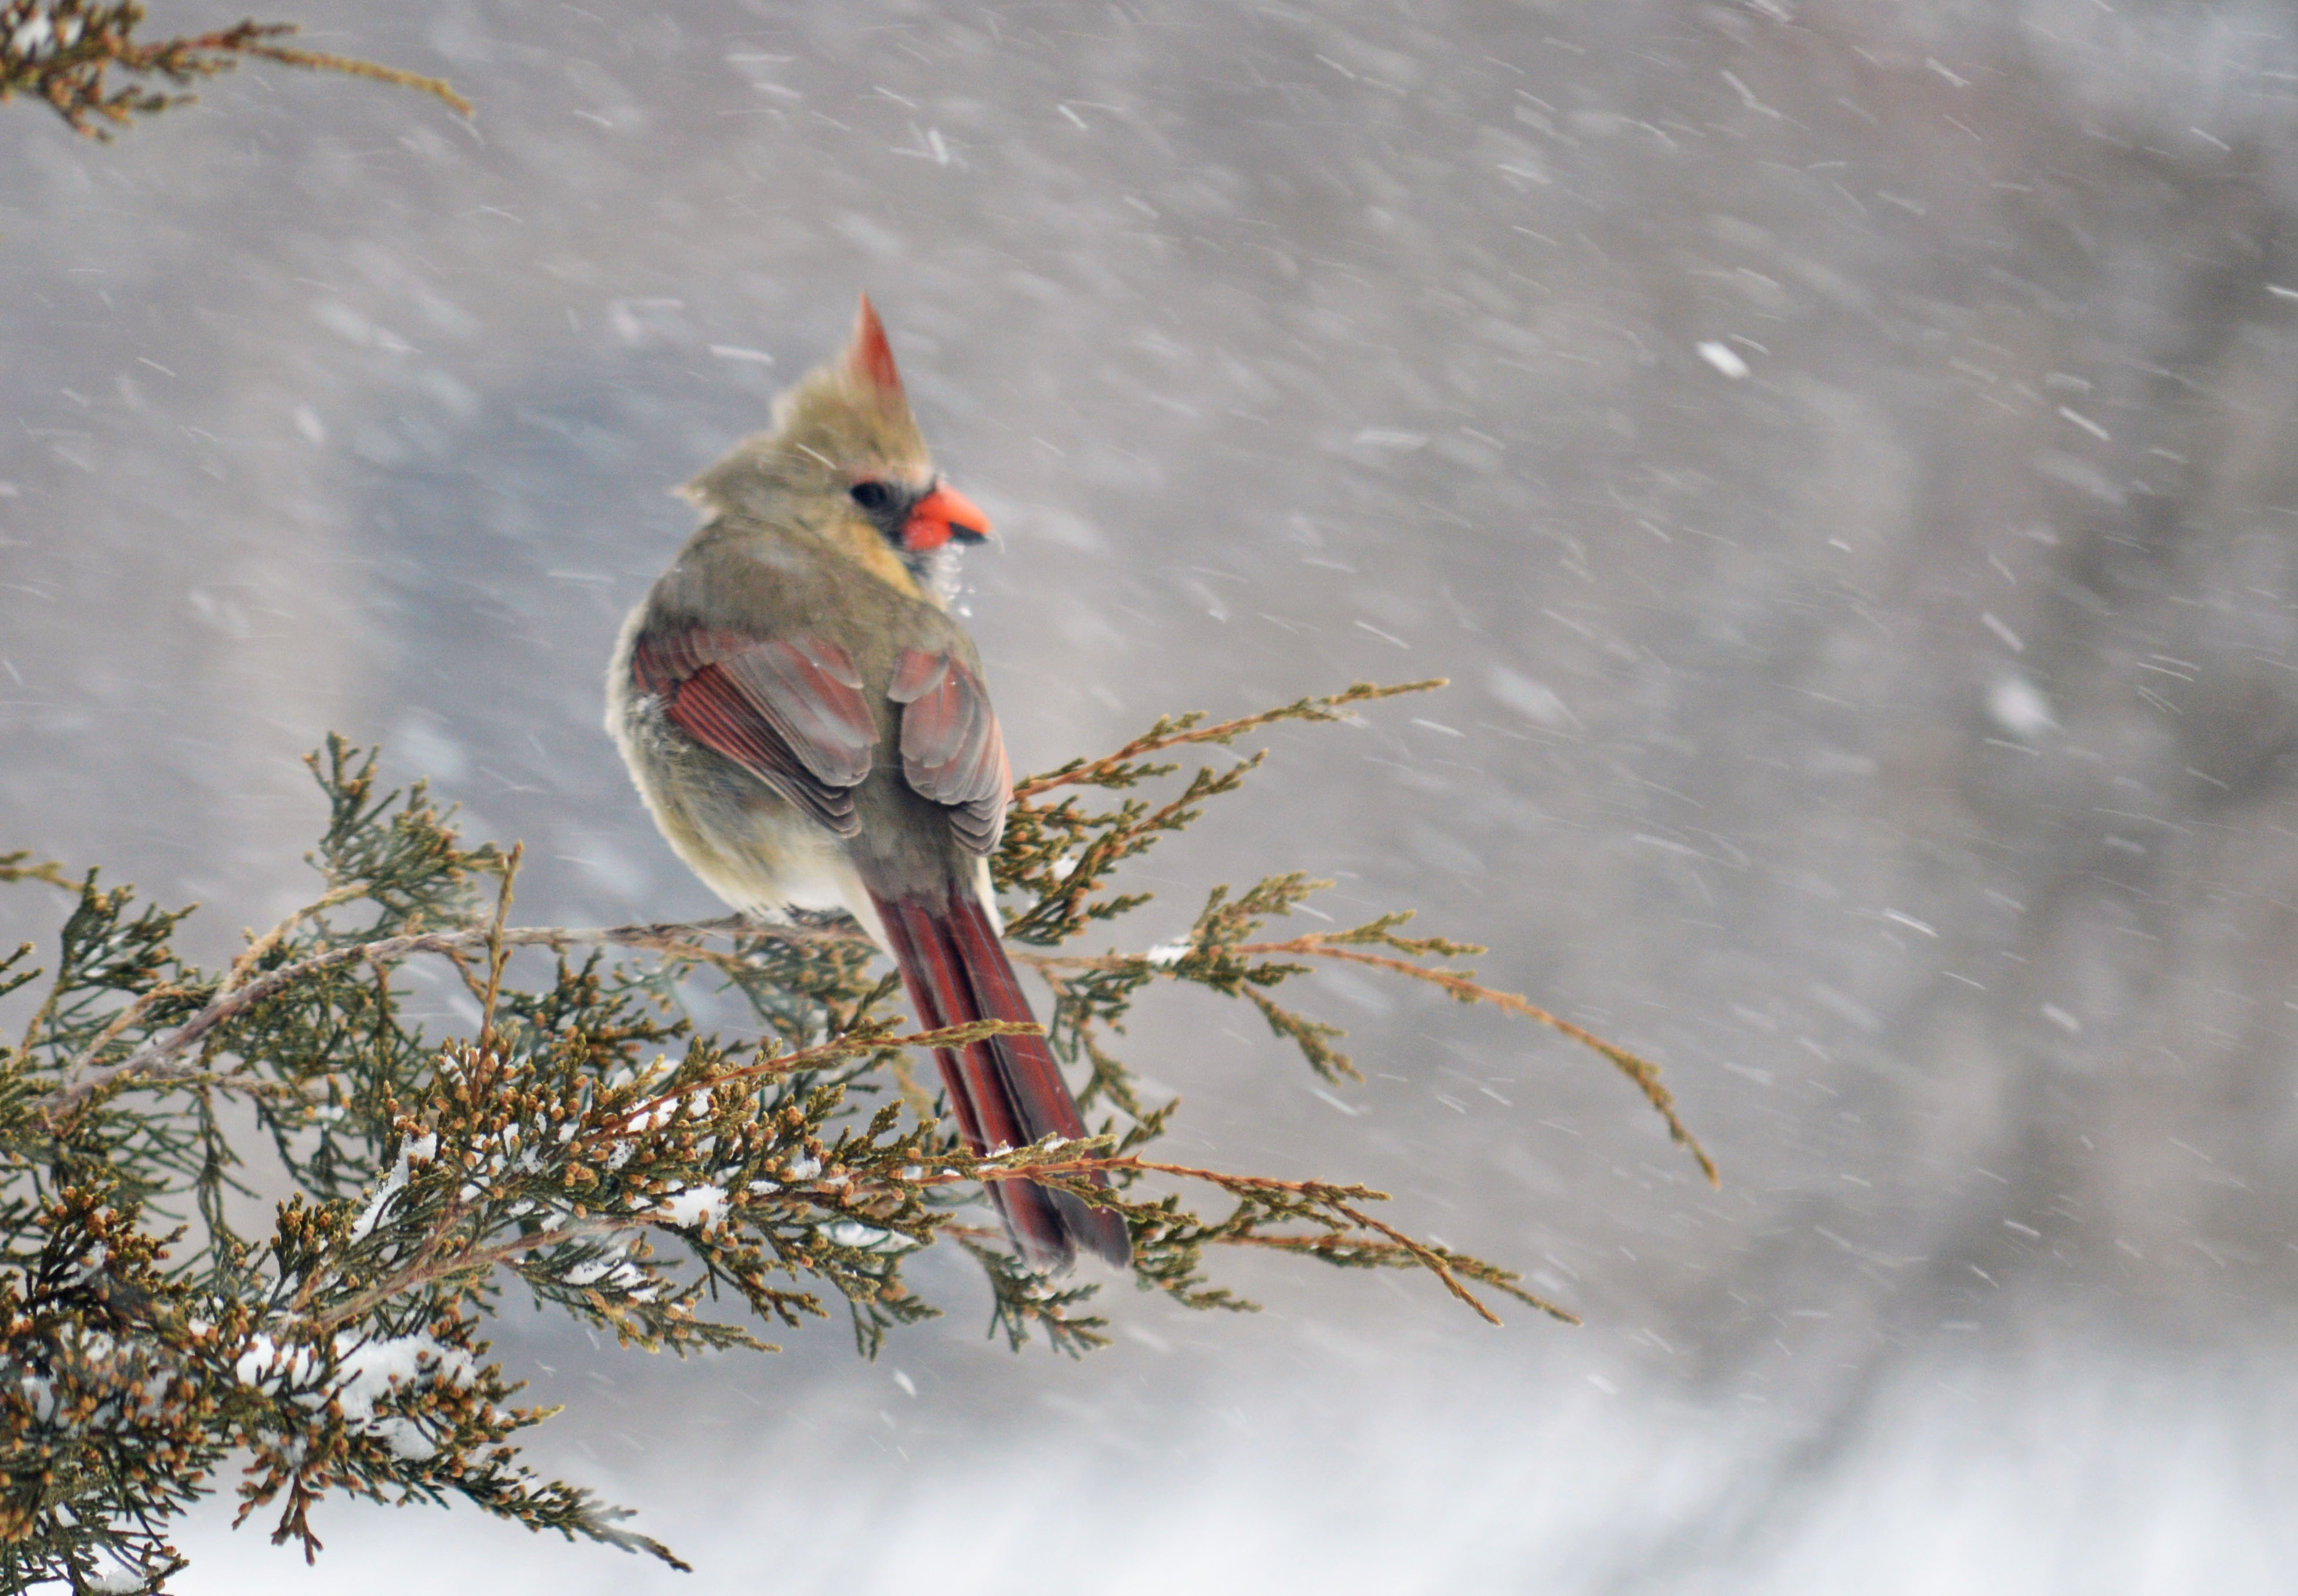 Female Cardinal. Taken march 2014 bellevue Iowa by Laura Schuster.